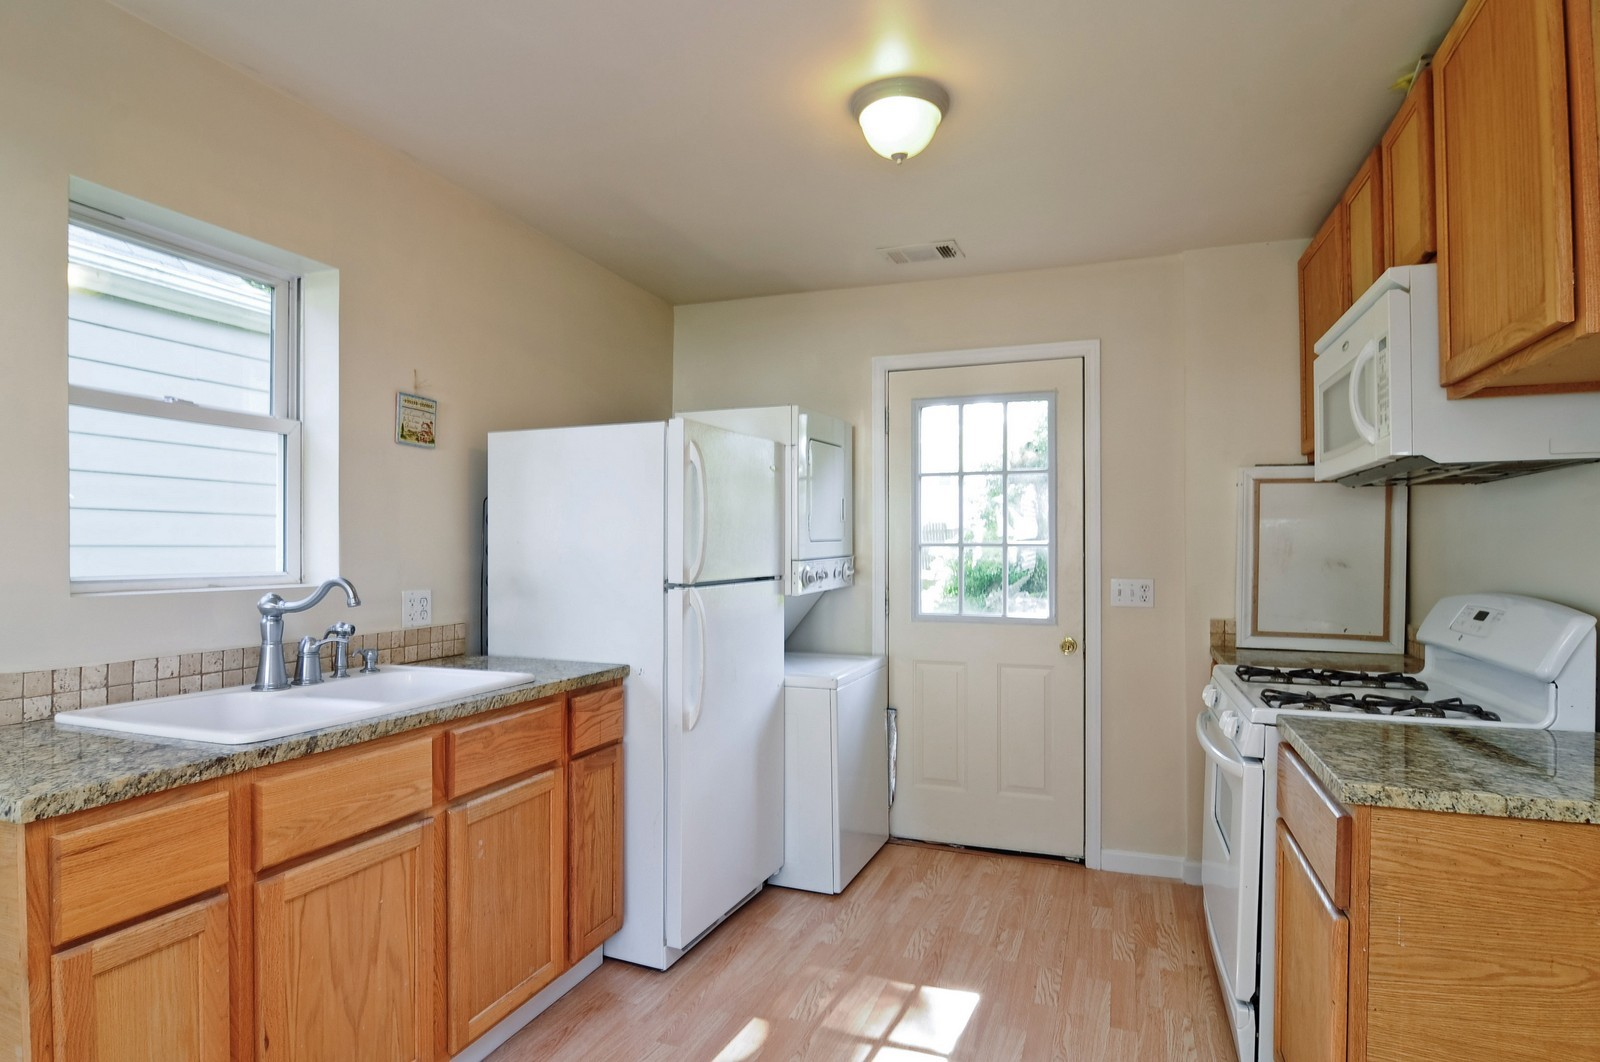 Real Estate Photography - 321 N Bellevue, Round Lake Park, IL, 60073 - Kitchen